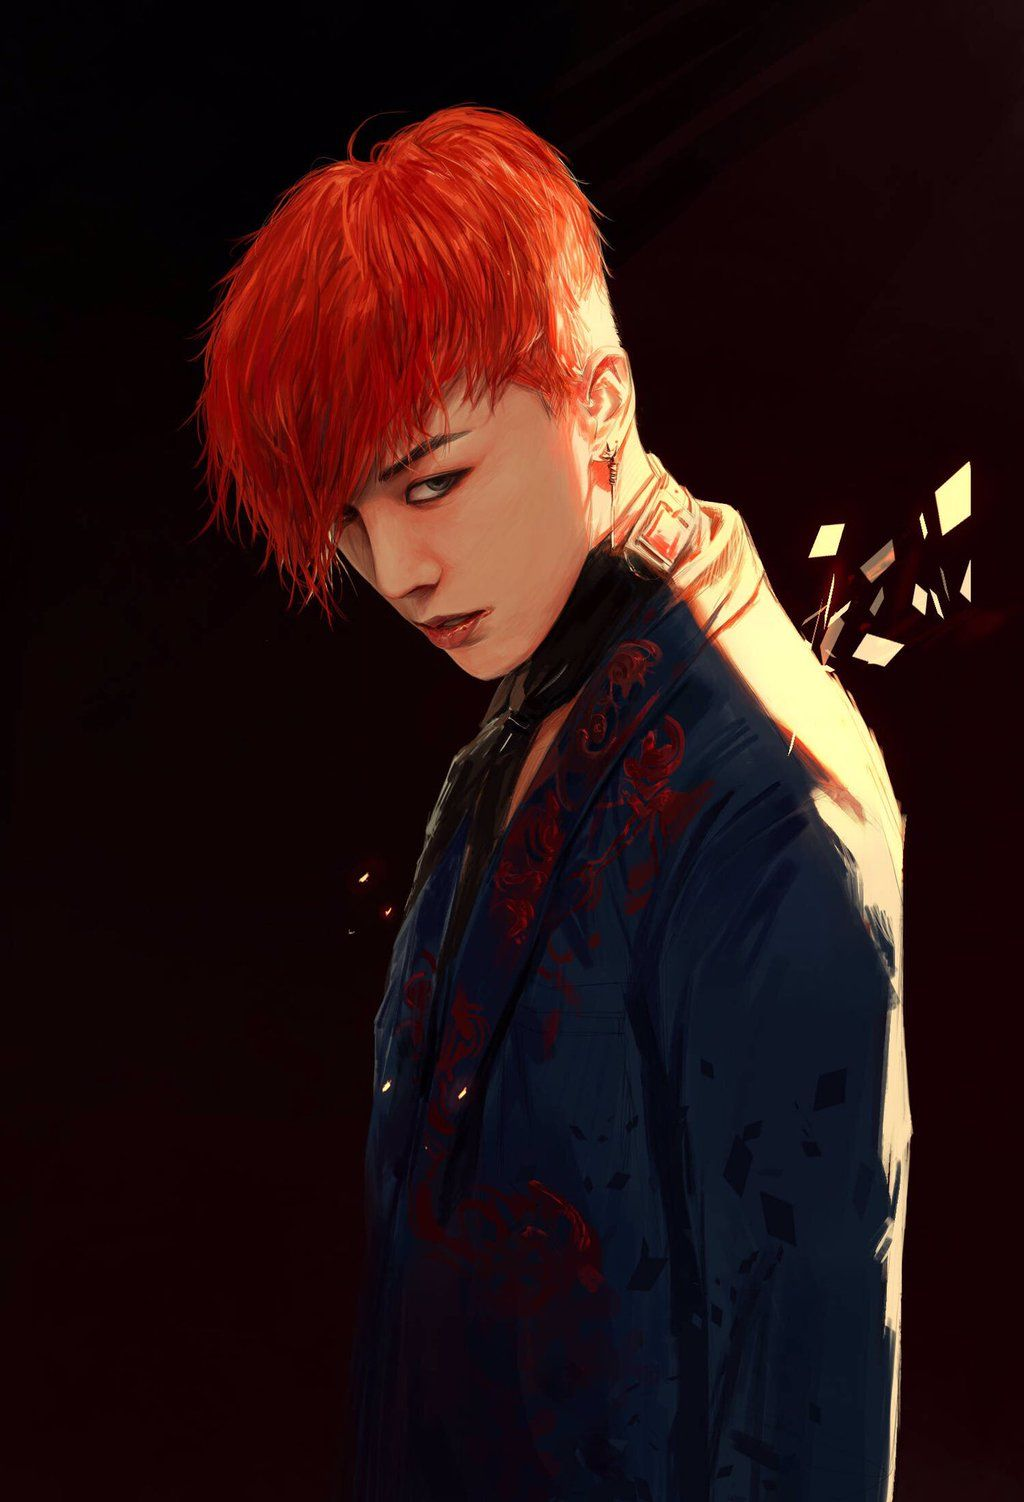 G Dragon Tumblr Bigbang Dragons Tumblr G Dragon